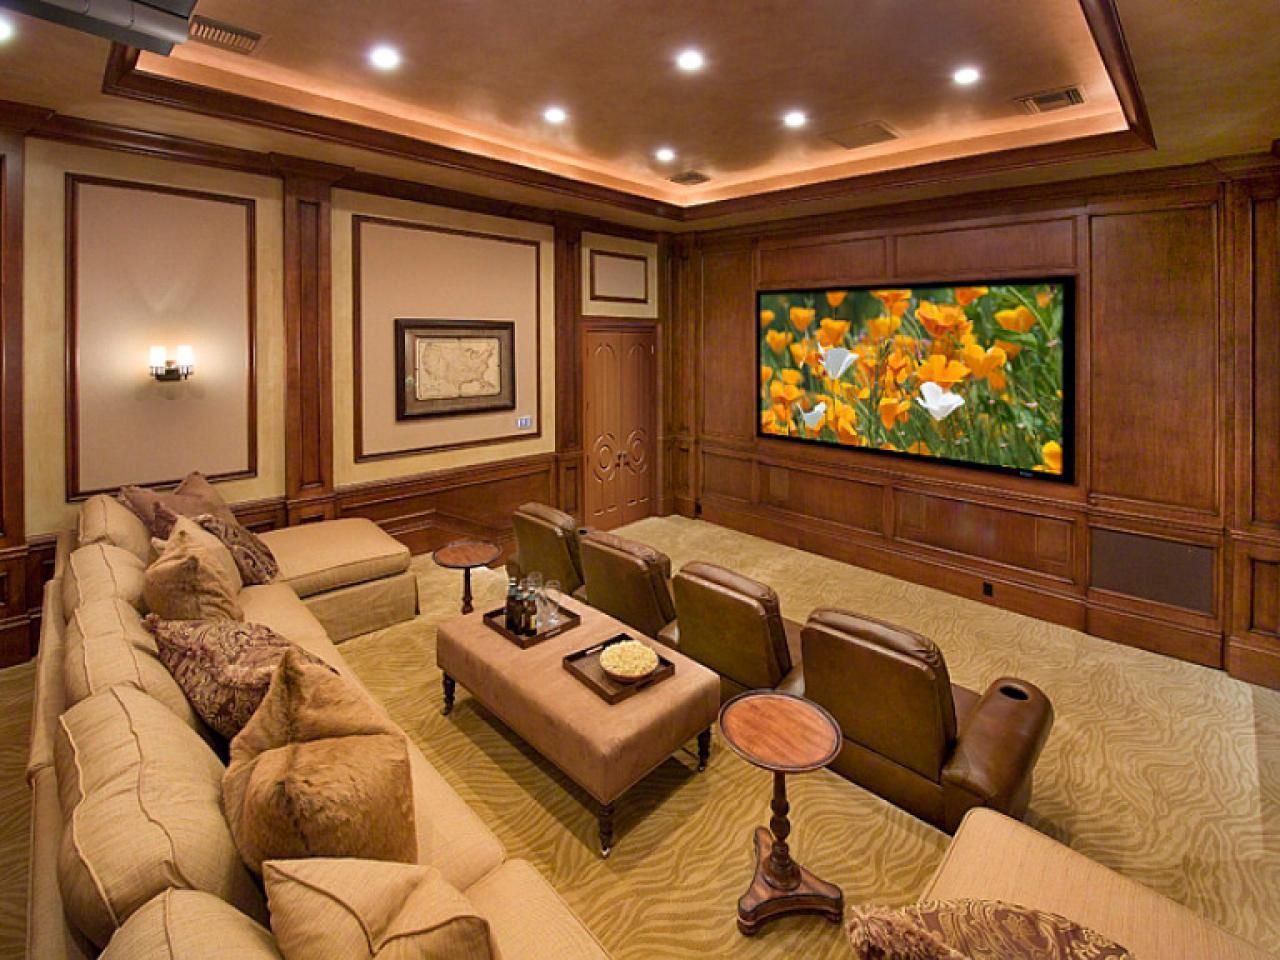 Small Media Room Ideas Pictures Options Tips Advice Small